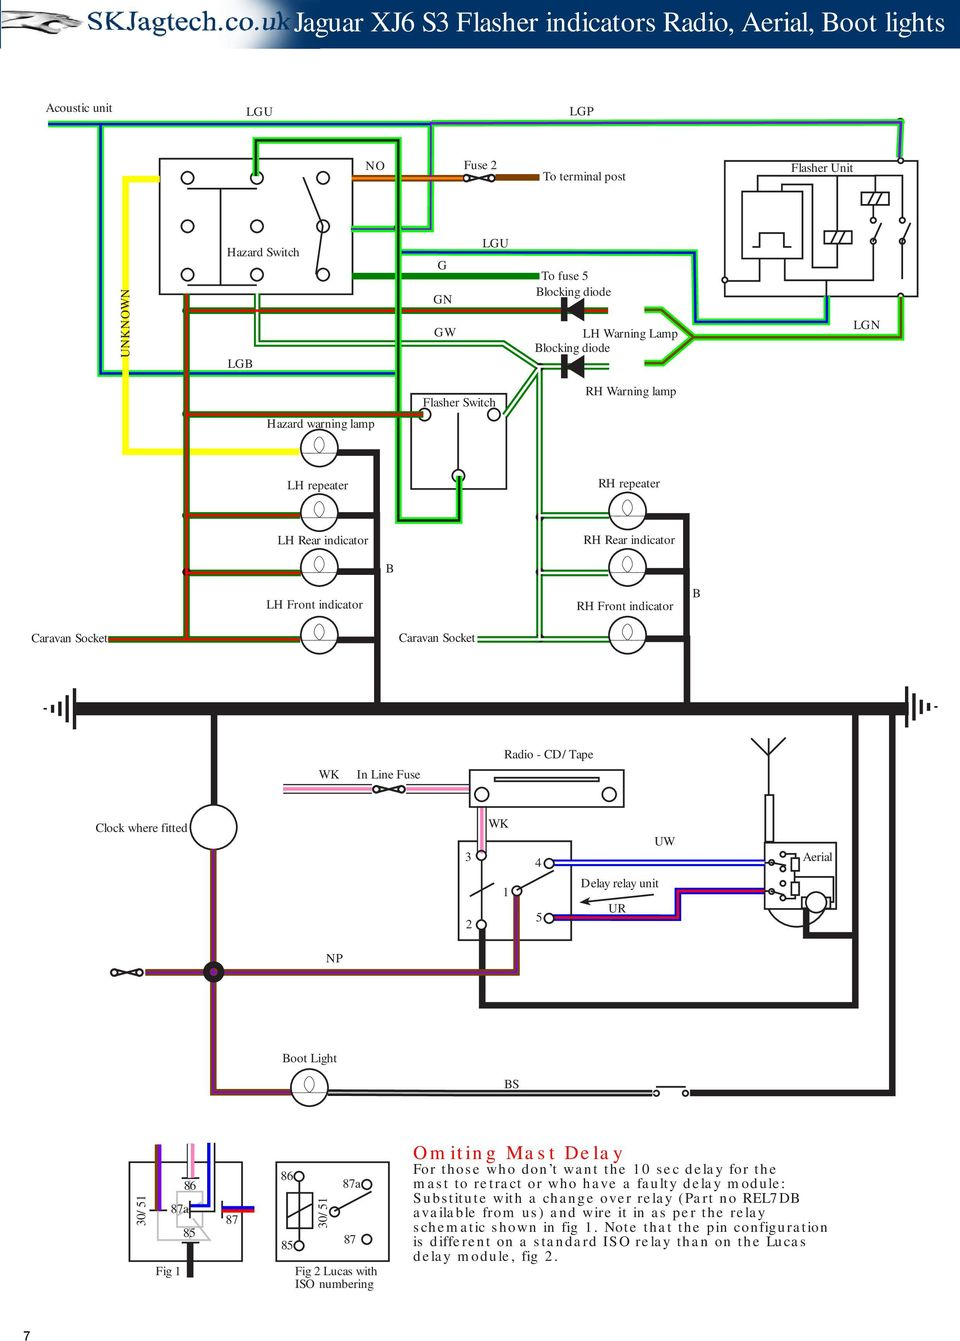 hight resolution of cd tape clock where fitted 3 2 wk 1 4 5 delay relay unit ur